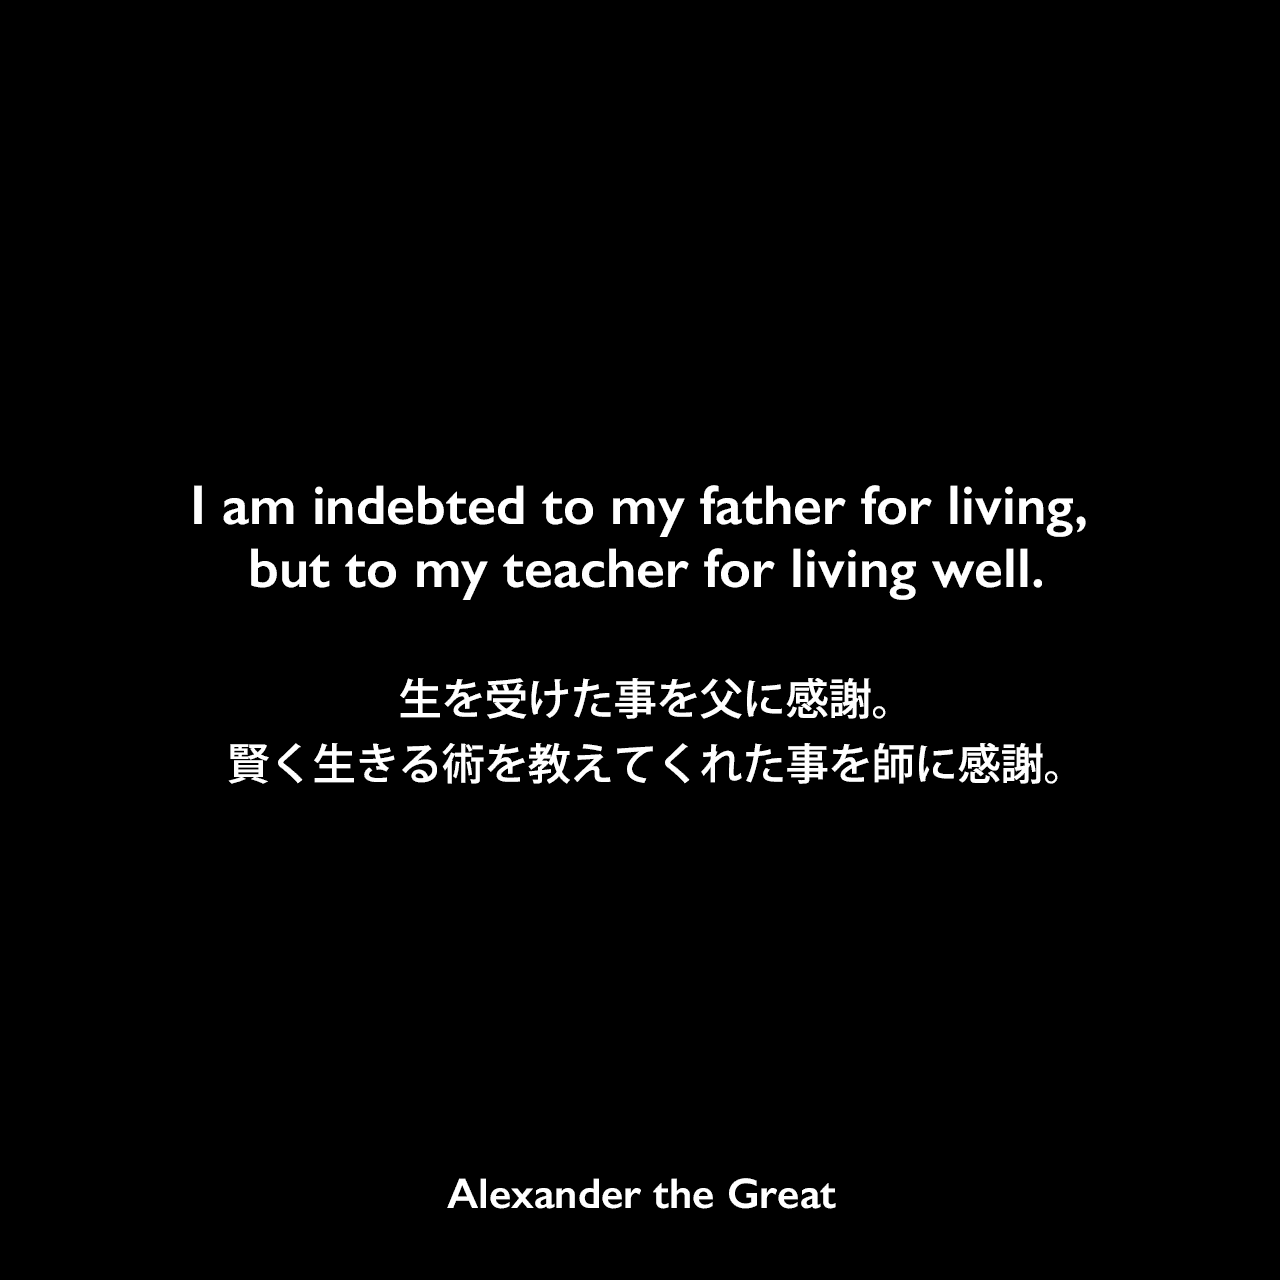 I am indebted to my father for living, but to my teacher for living well.生を受けた事を父に感謝。賢く生きる術を教えてくれた事を師に感謝。Alexander the Great